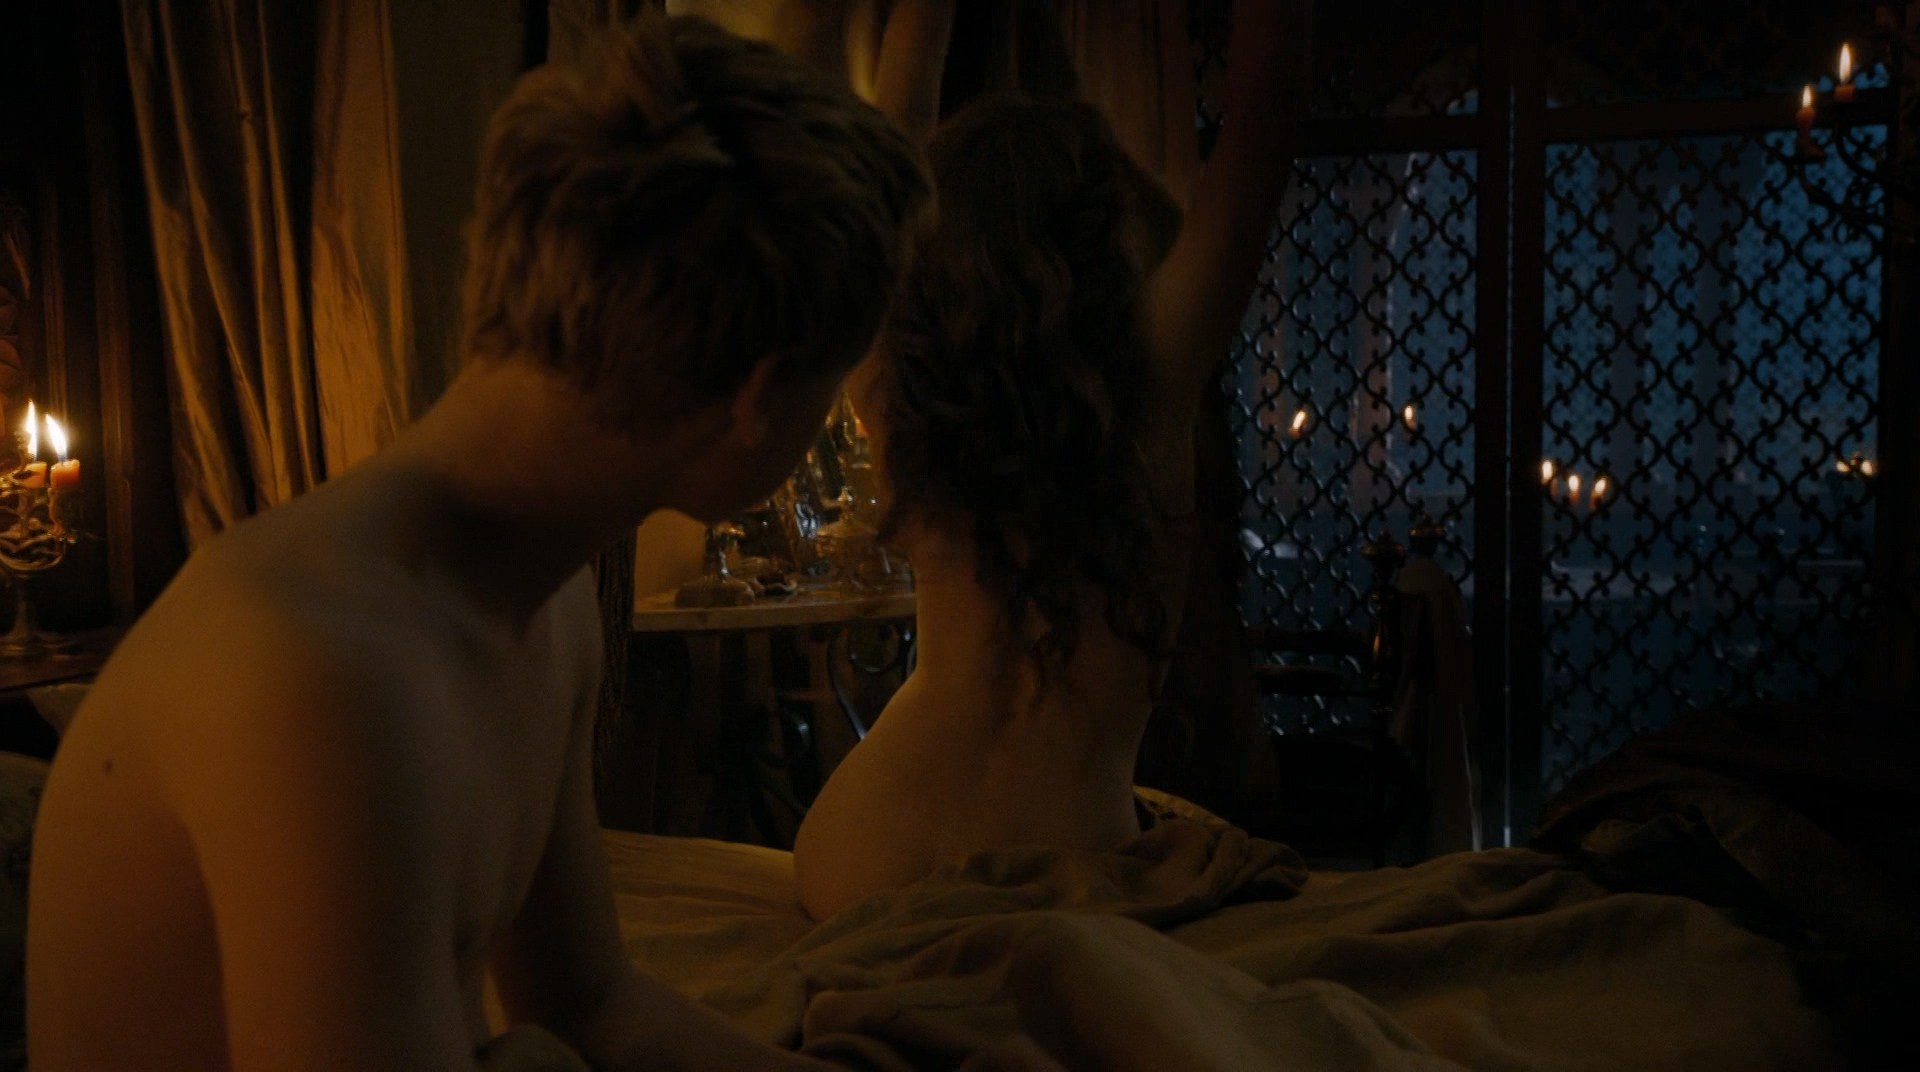 0313180242692_07_Natalie-Dormer-hot-nipple-others-nude-full-frontal-Game-Of-Thrones-2015-s5e3-hd720-1080p4.jpg